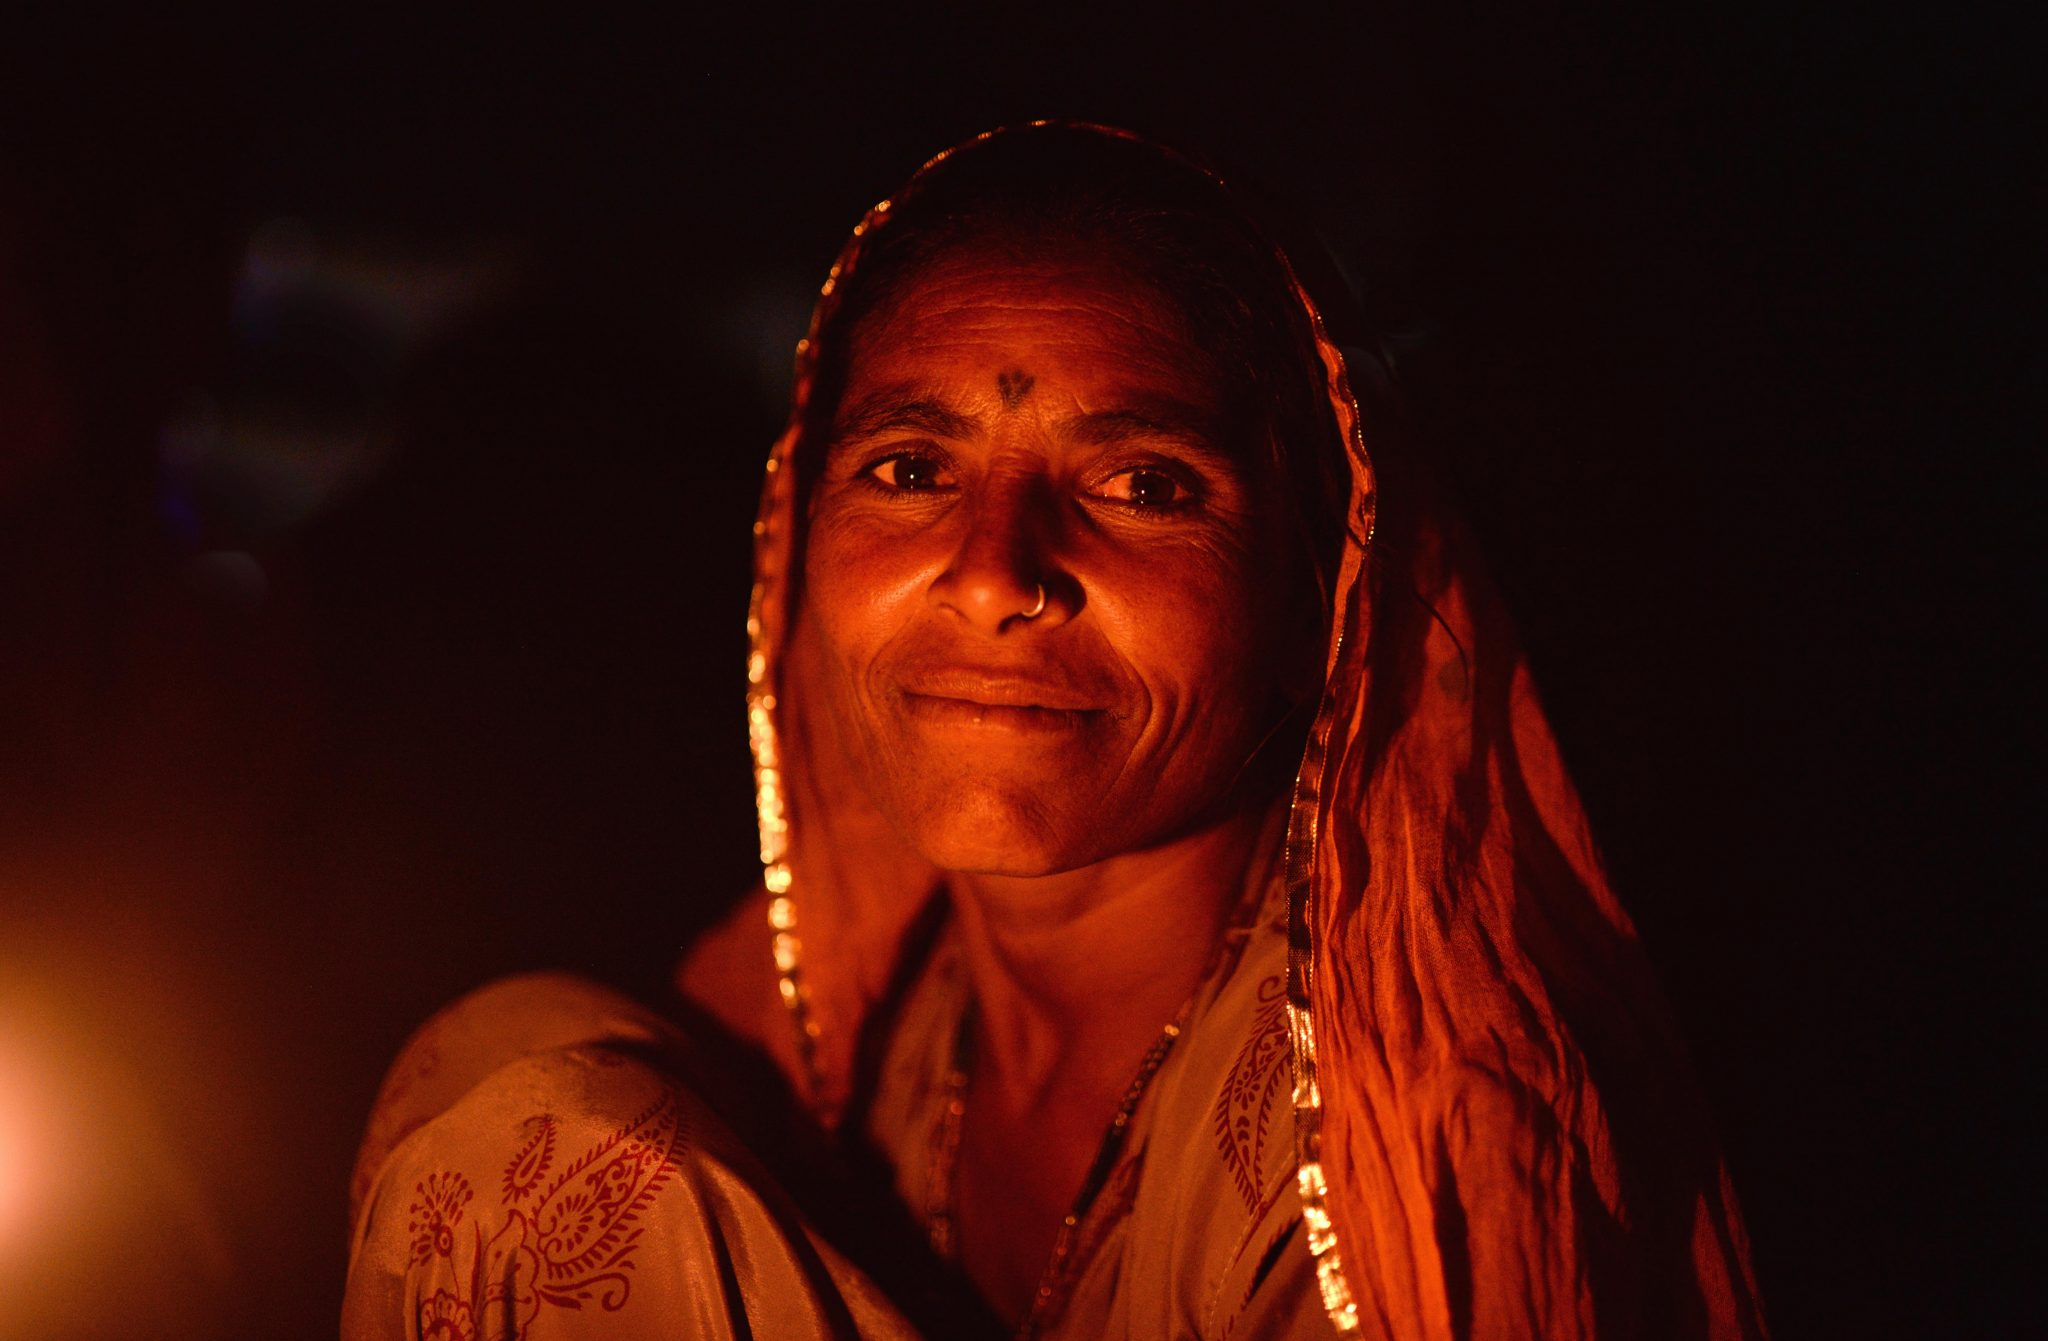 A night in Pushkar